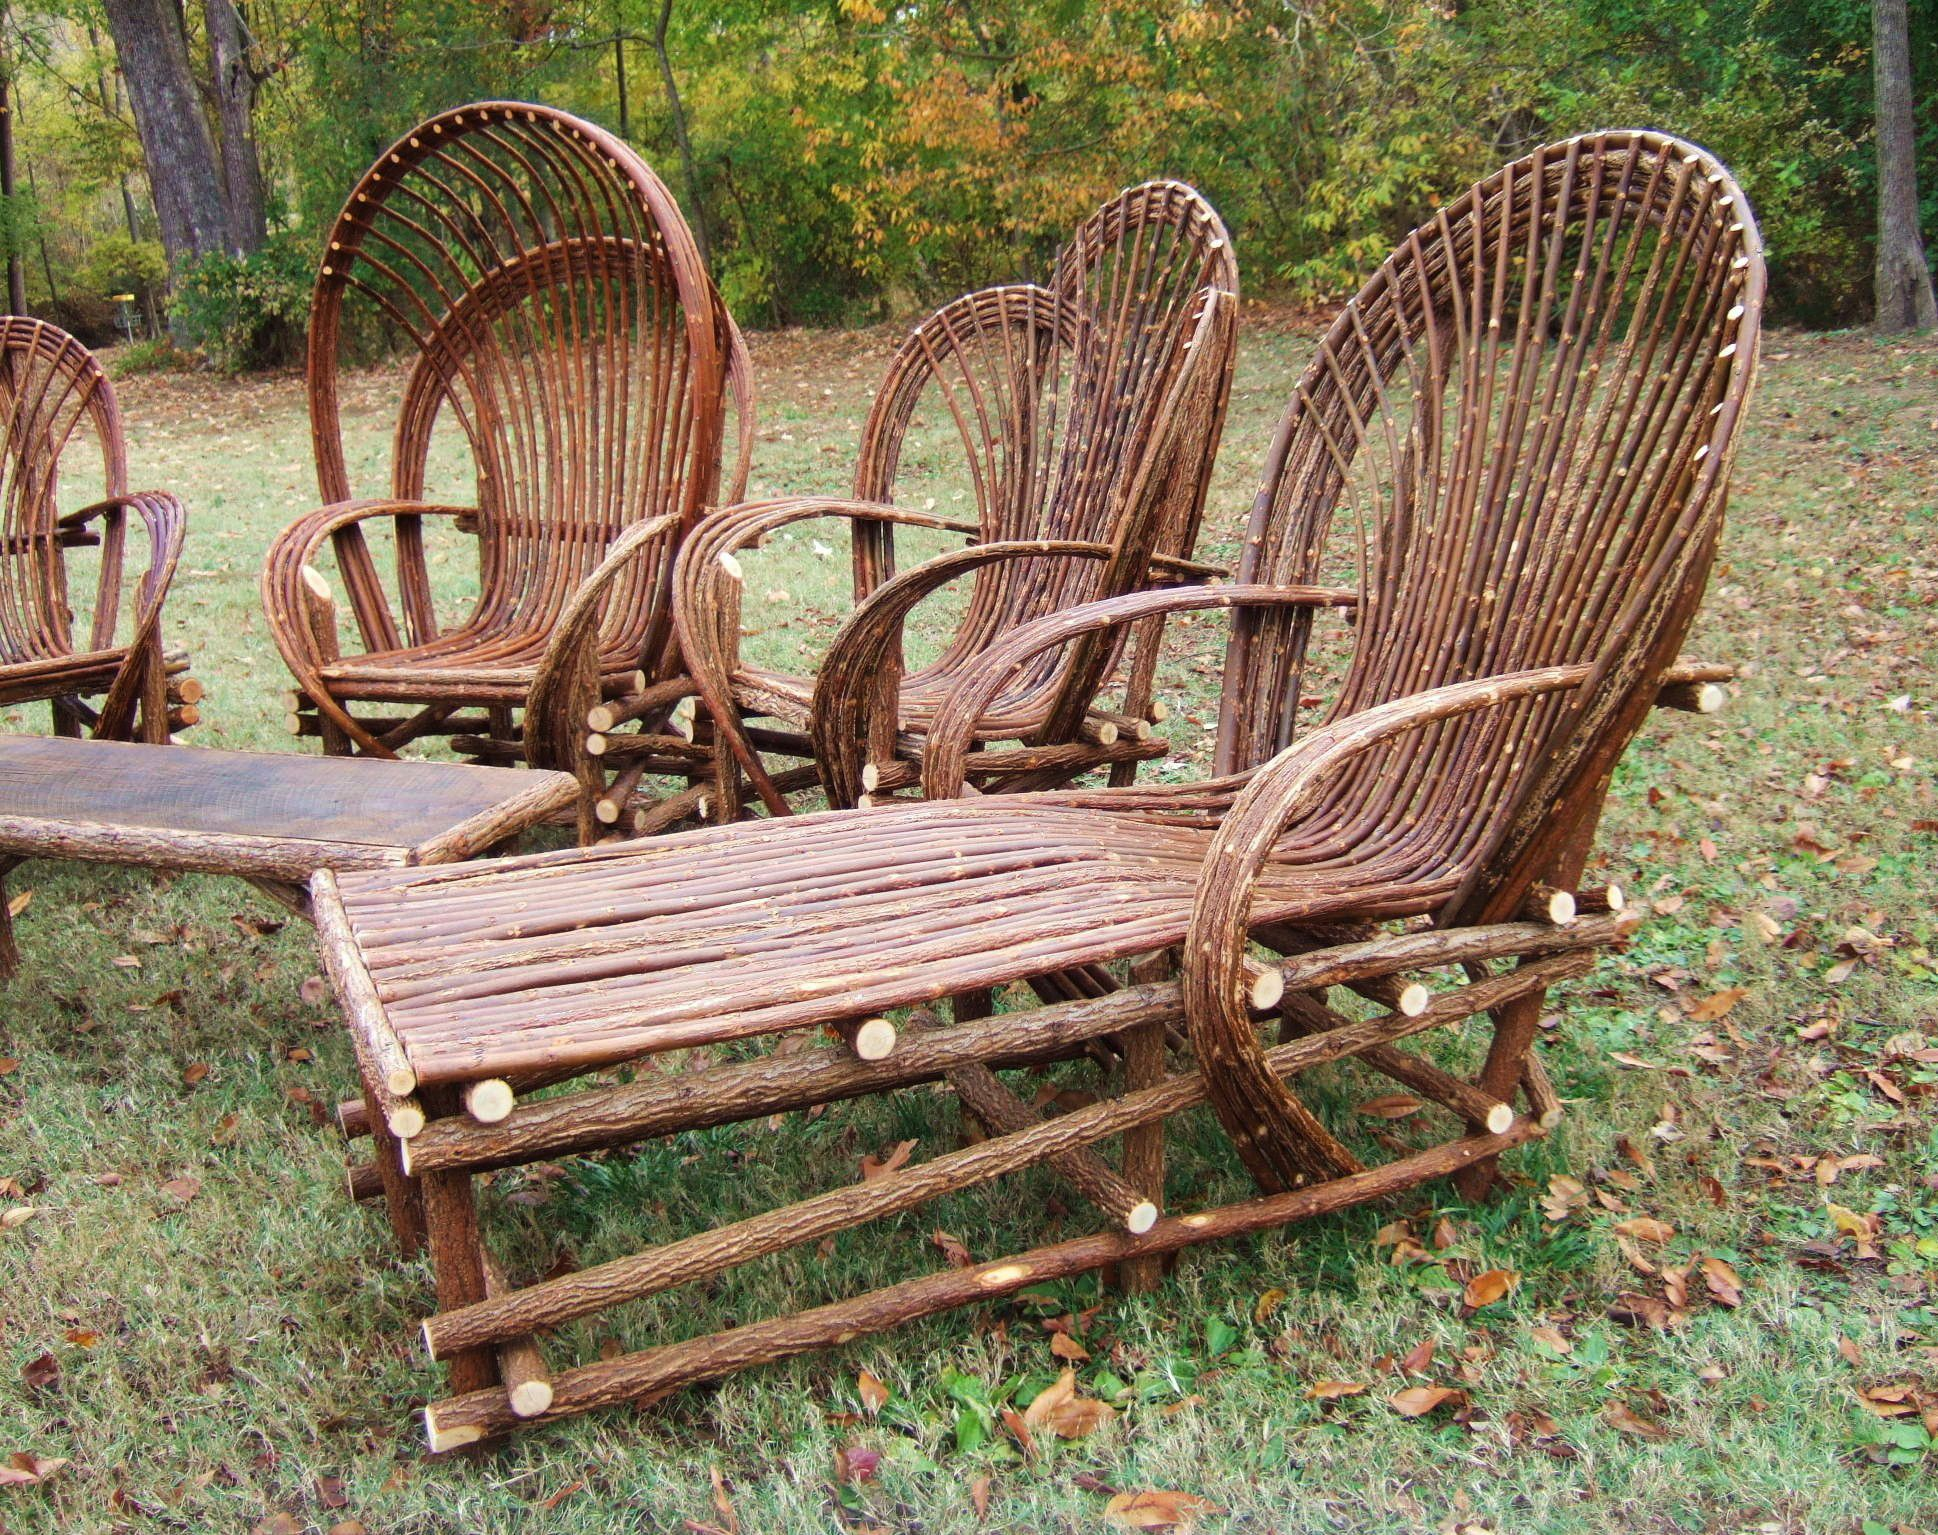 Chaise Loungers Made With Willow Trees